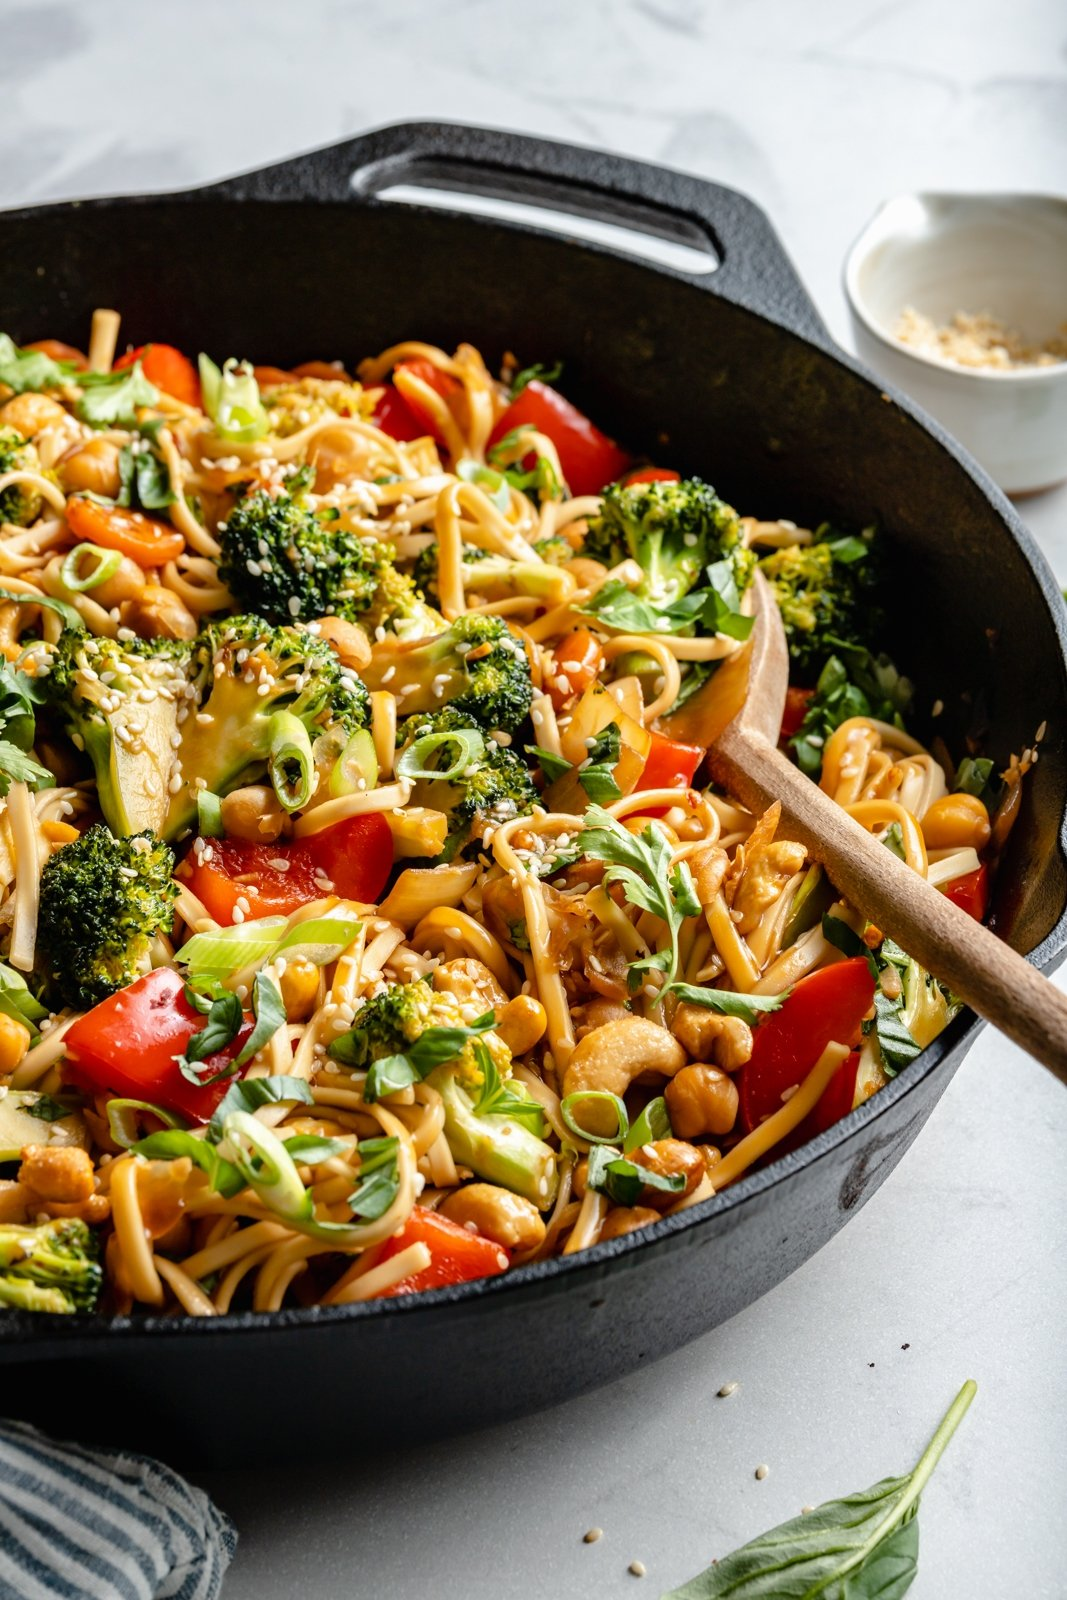 vegan stir fry noodles in a skillet